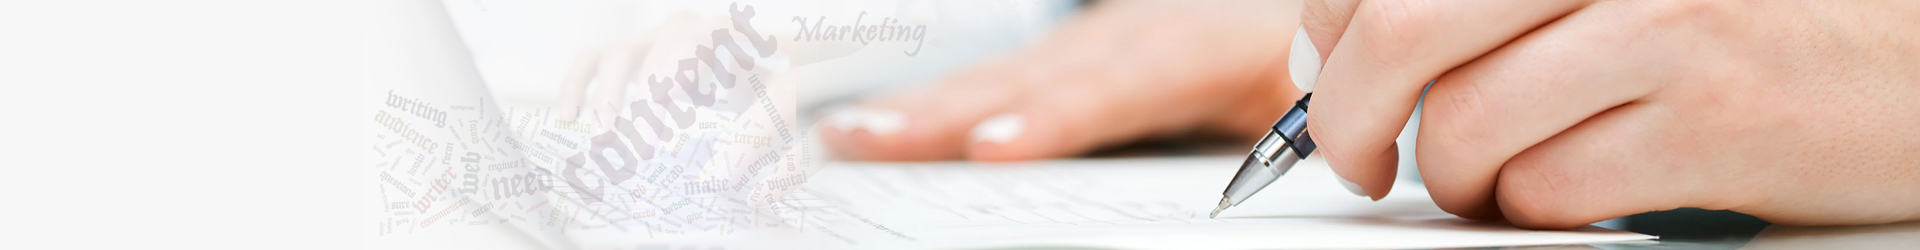 Content marketing strategy,professional writing services